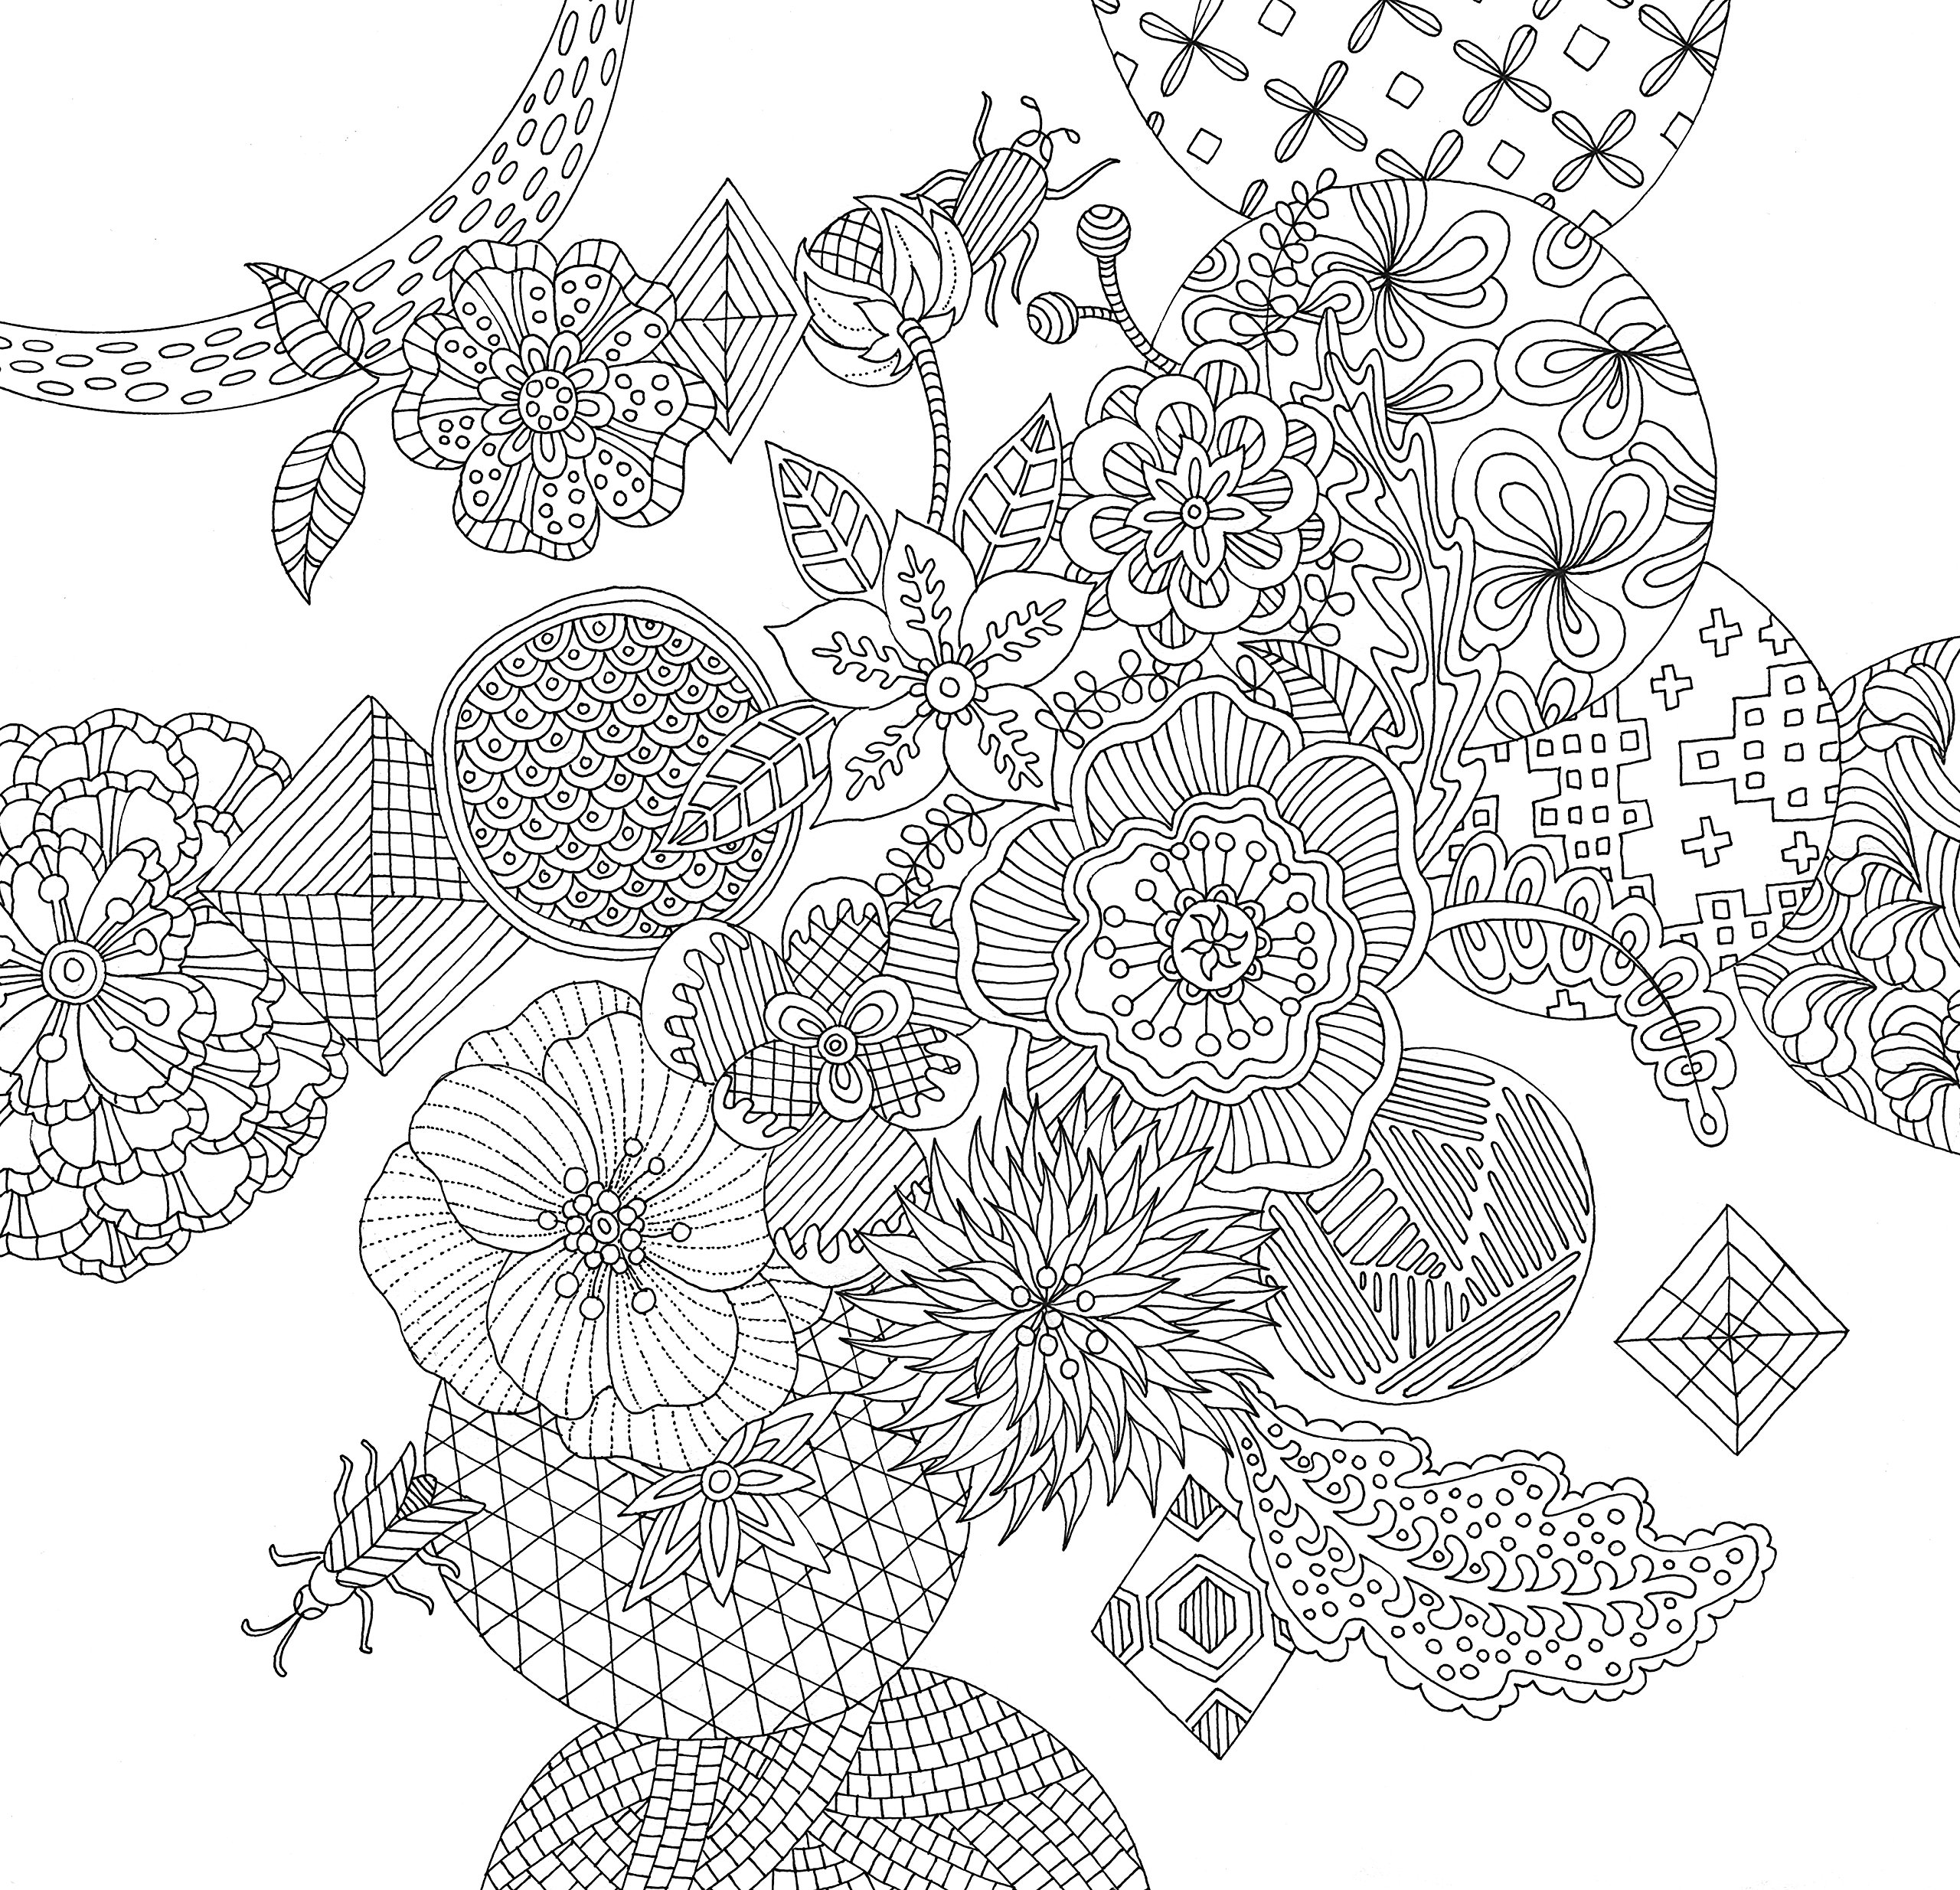 Zen coloring books for adults app - Zen Garden Adult Coloring Book 31 Stress Relieving Designs